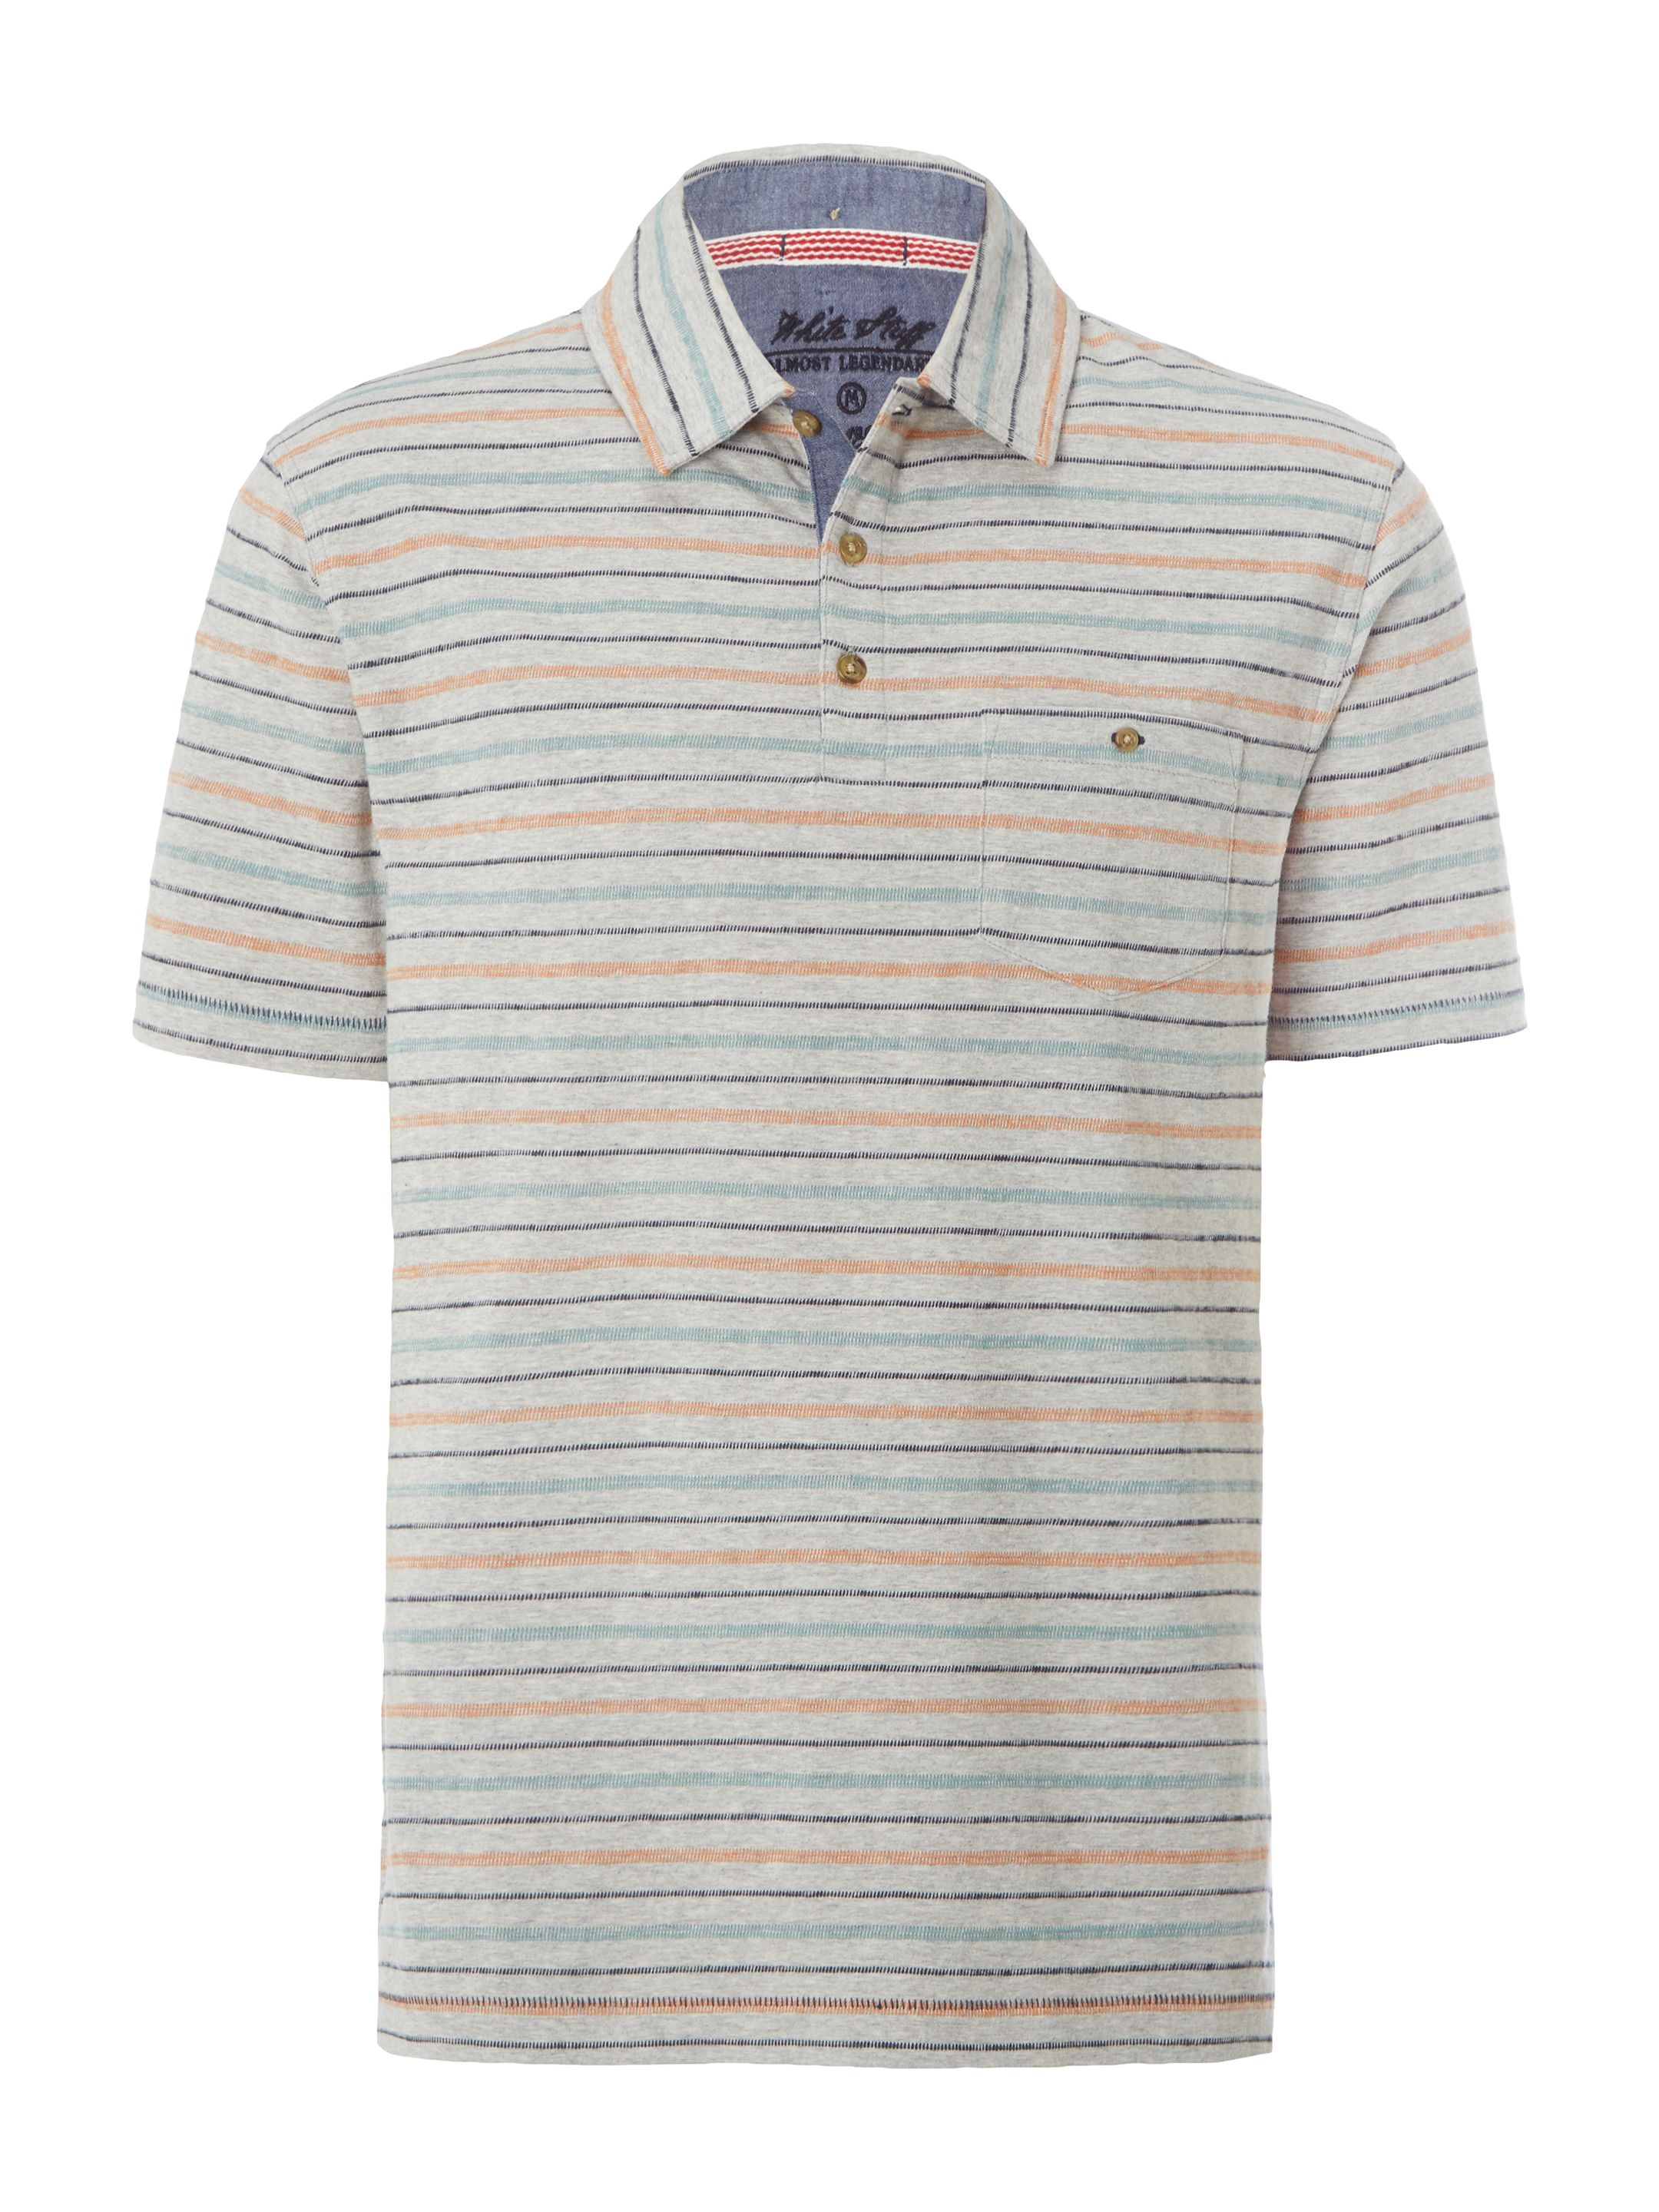 Men's White Stuff Dashed Multi Stripe Polo, Grey